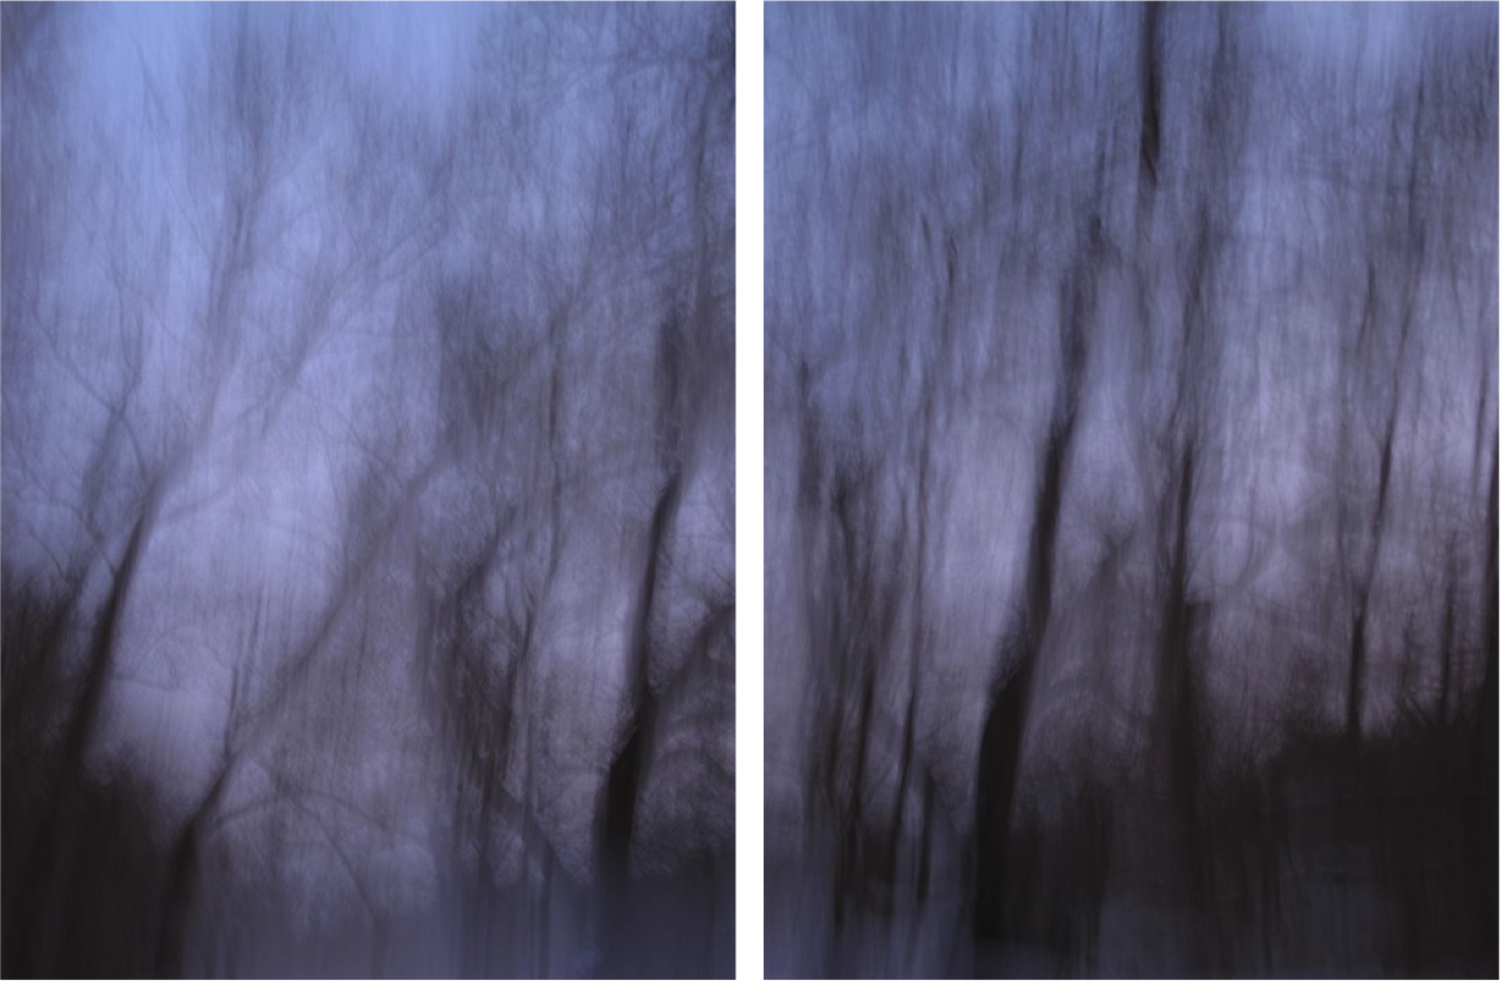 Large diptych elemental